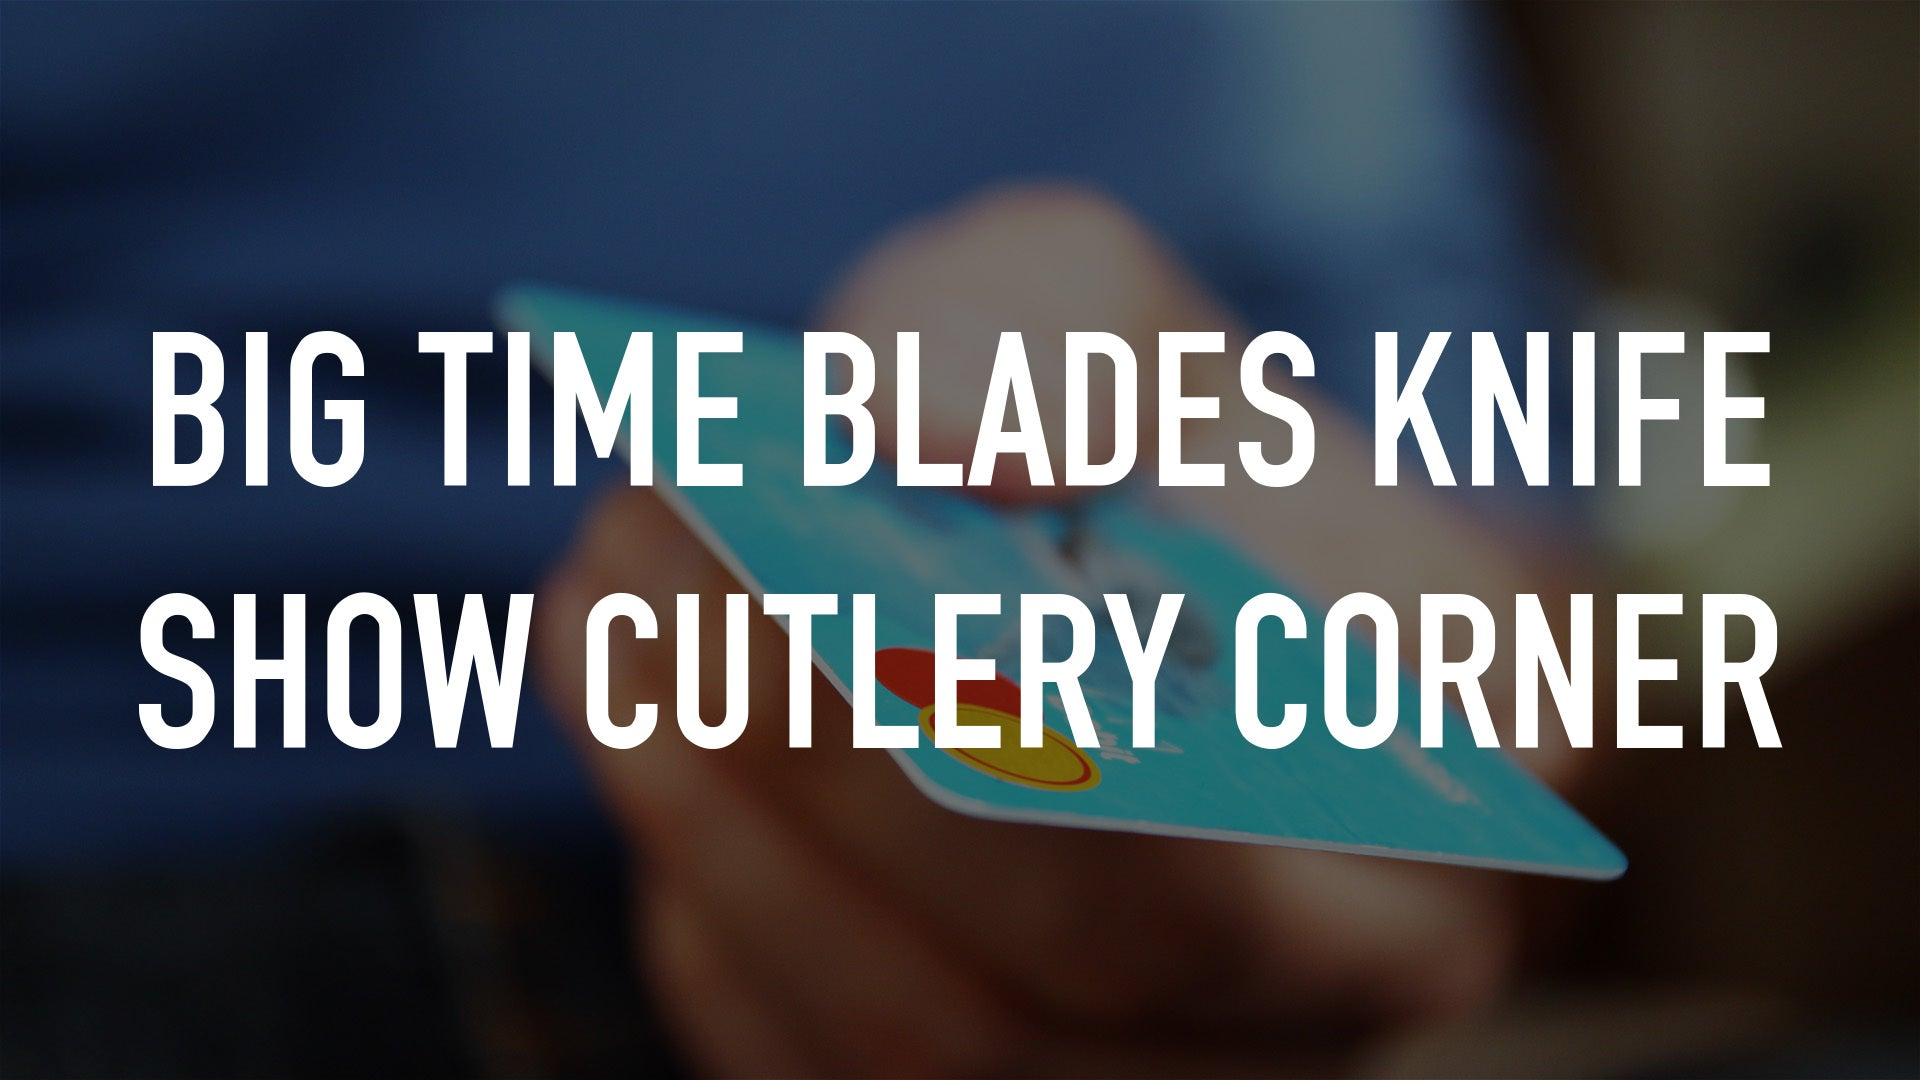 Big Time Blades Knife Show Cutlery Corner